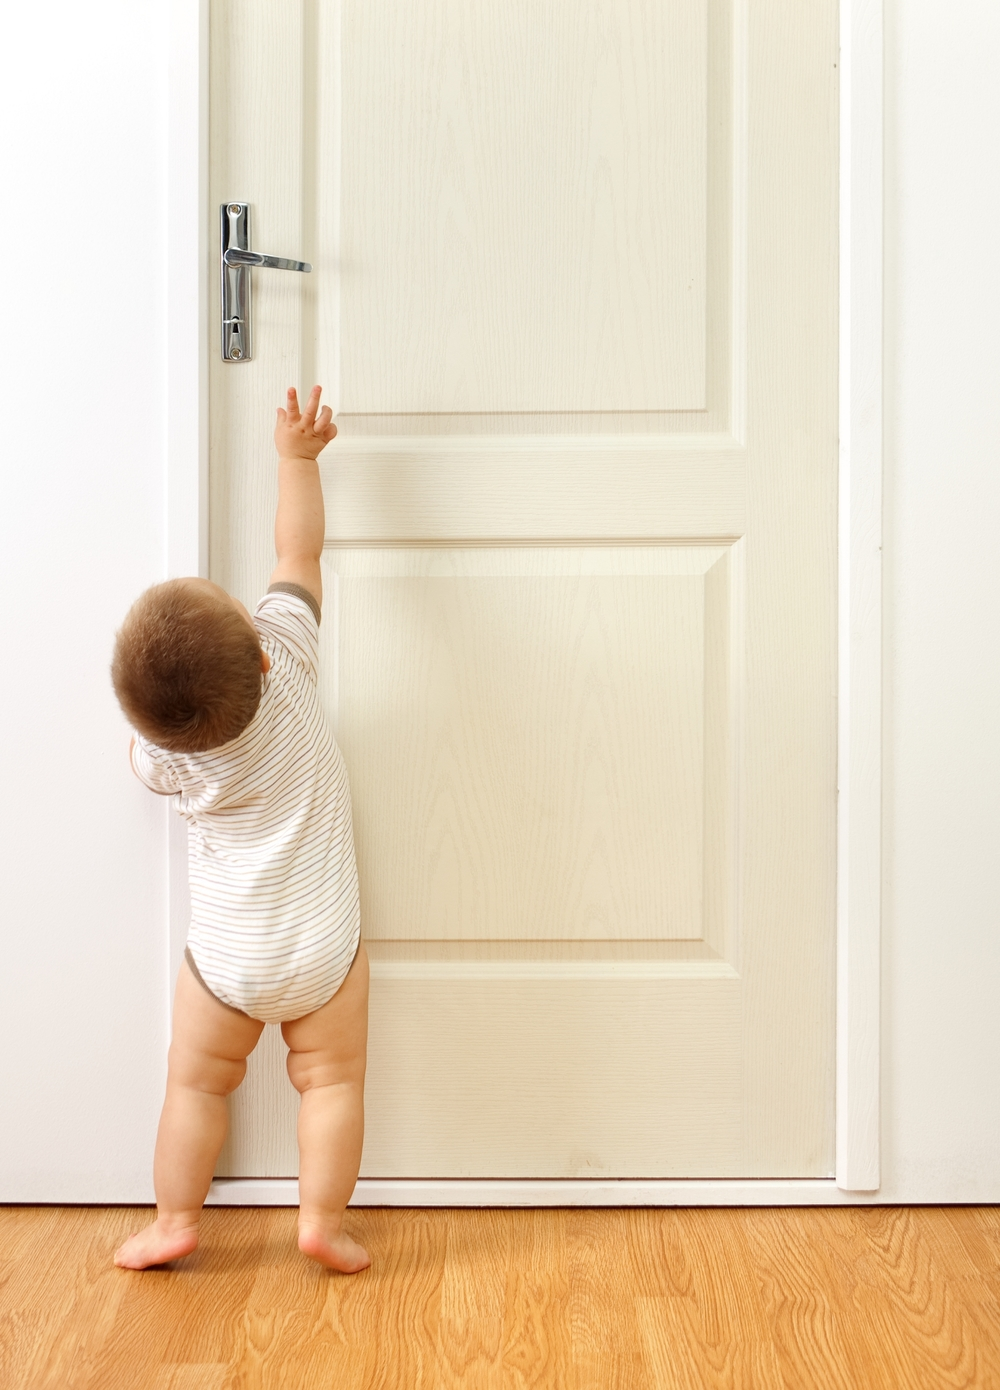 Baby boy reaching for door handle.